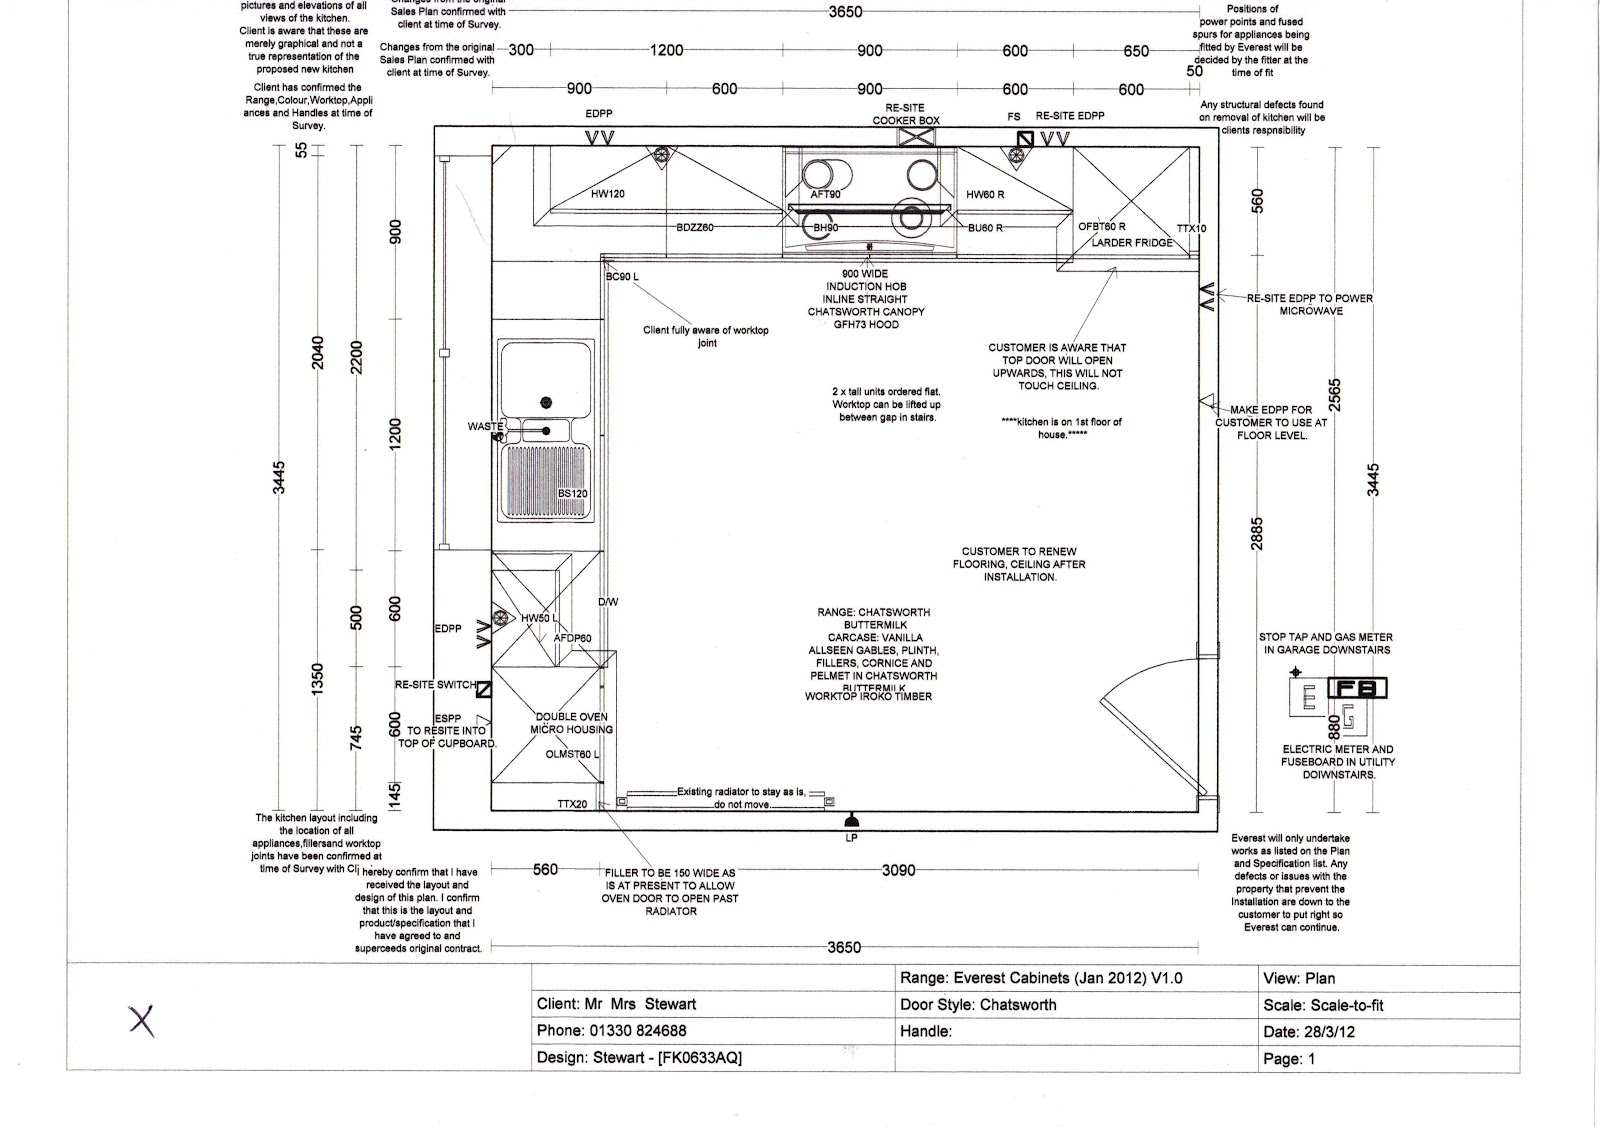 Small 10 X 10 L Shaped Kitchens Designs also C er Van also Corridor Kitchen Design Layout as well Restaurant Kitchen Layout And Design moreover Kitchen Floor Plans With Dimensions. on kitchen cabinet layout dimensions